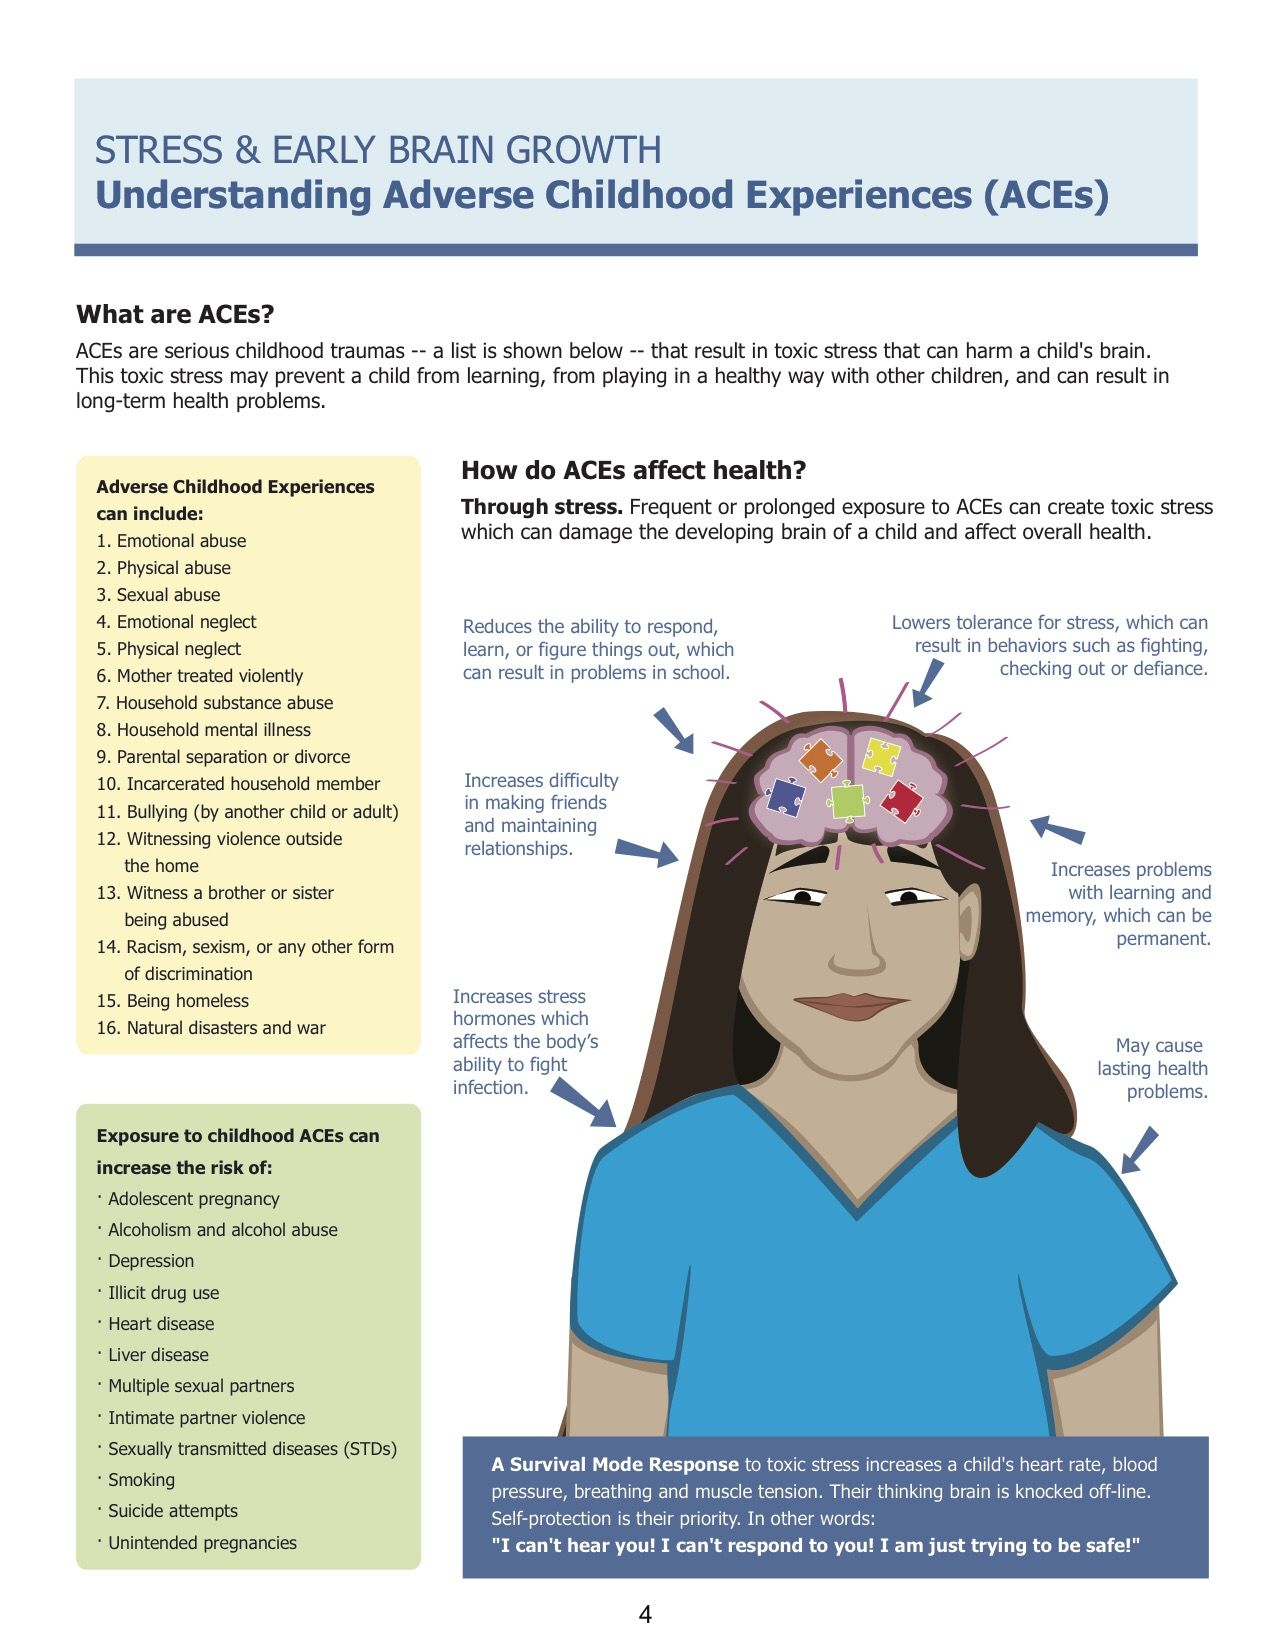 Understanding Adverse Childhood Experiences And Their